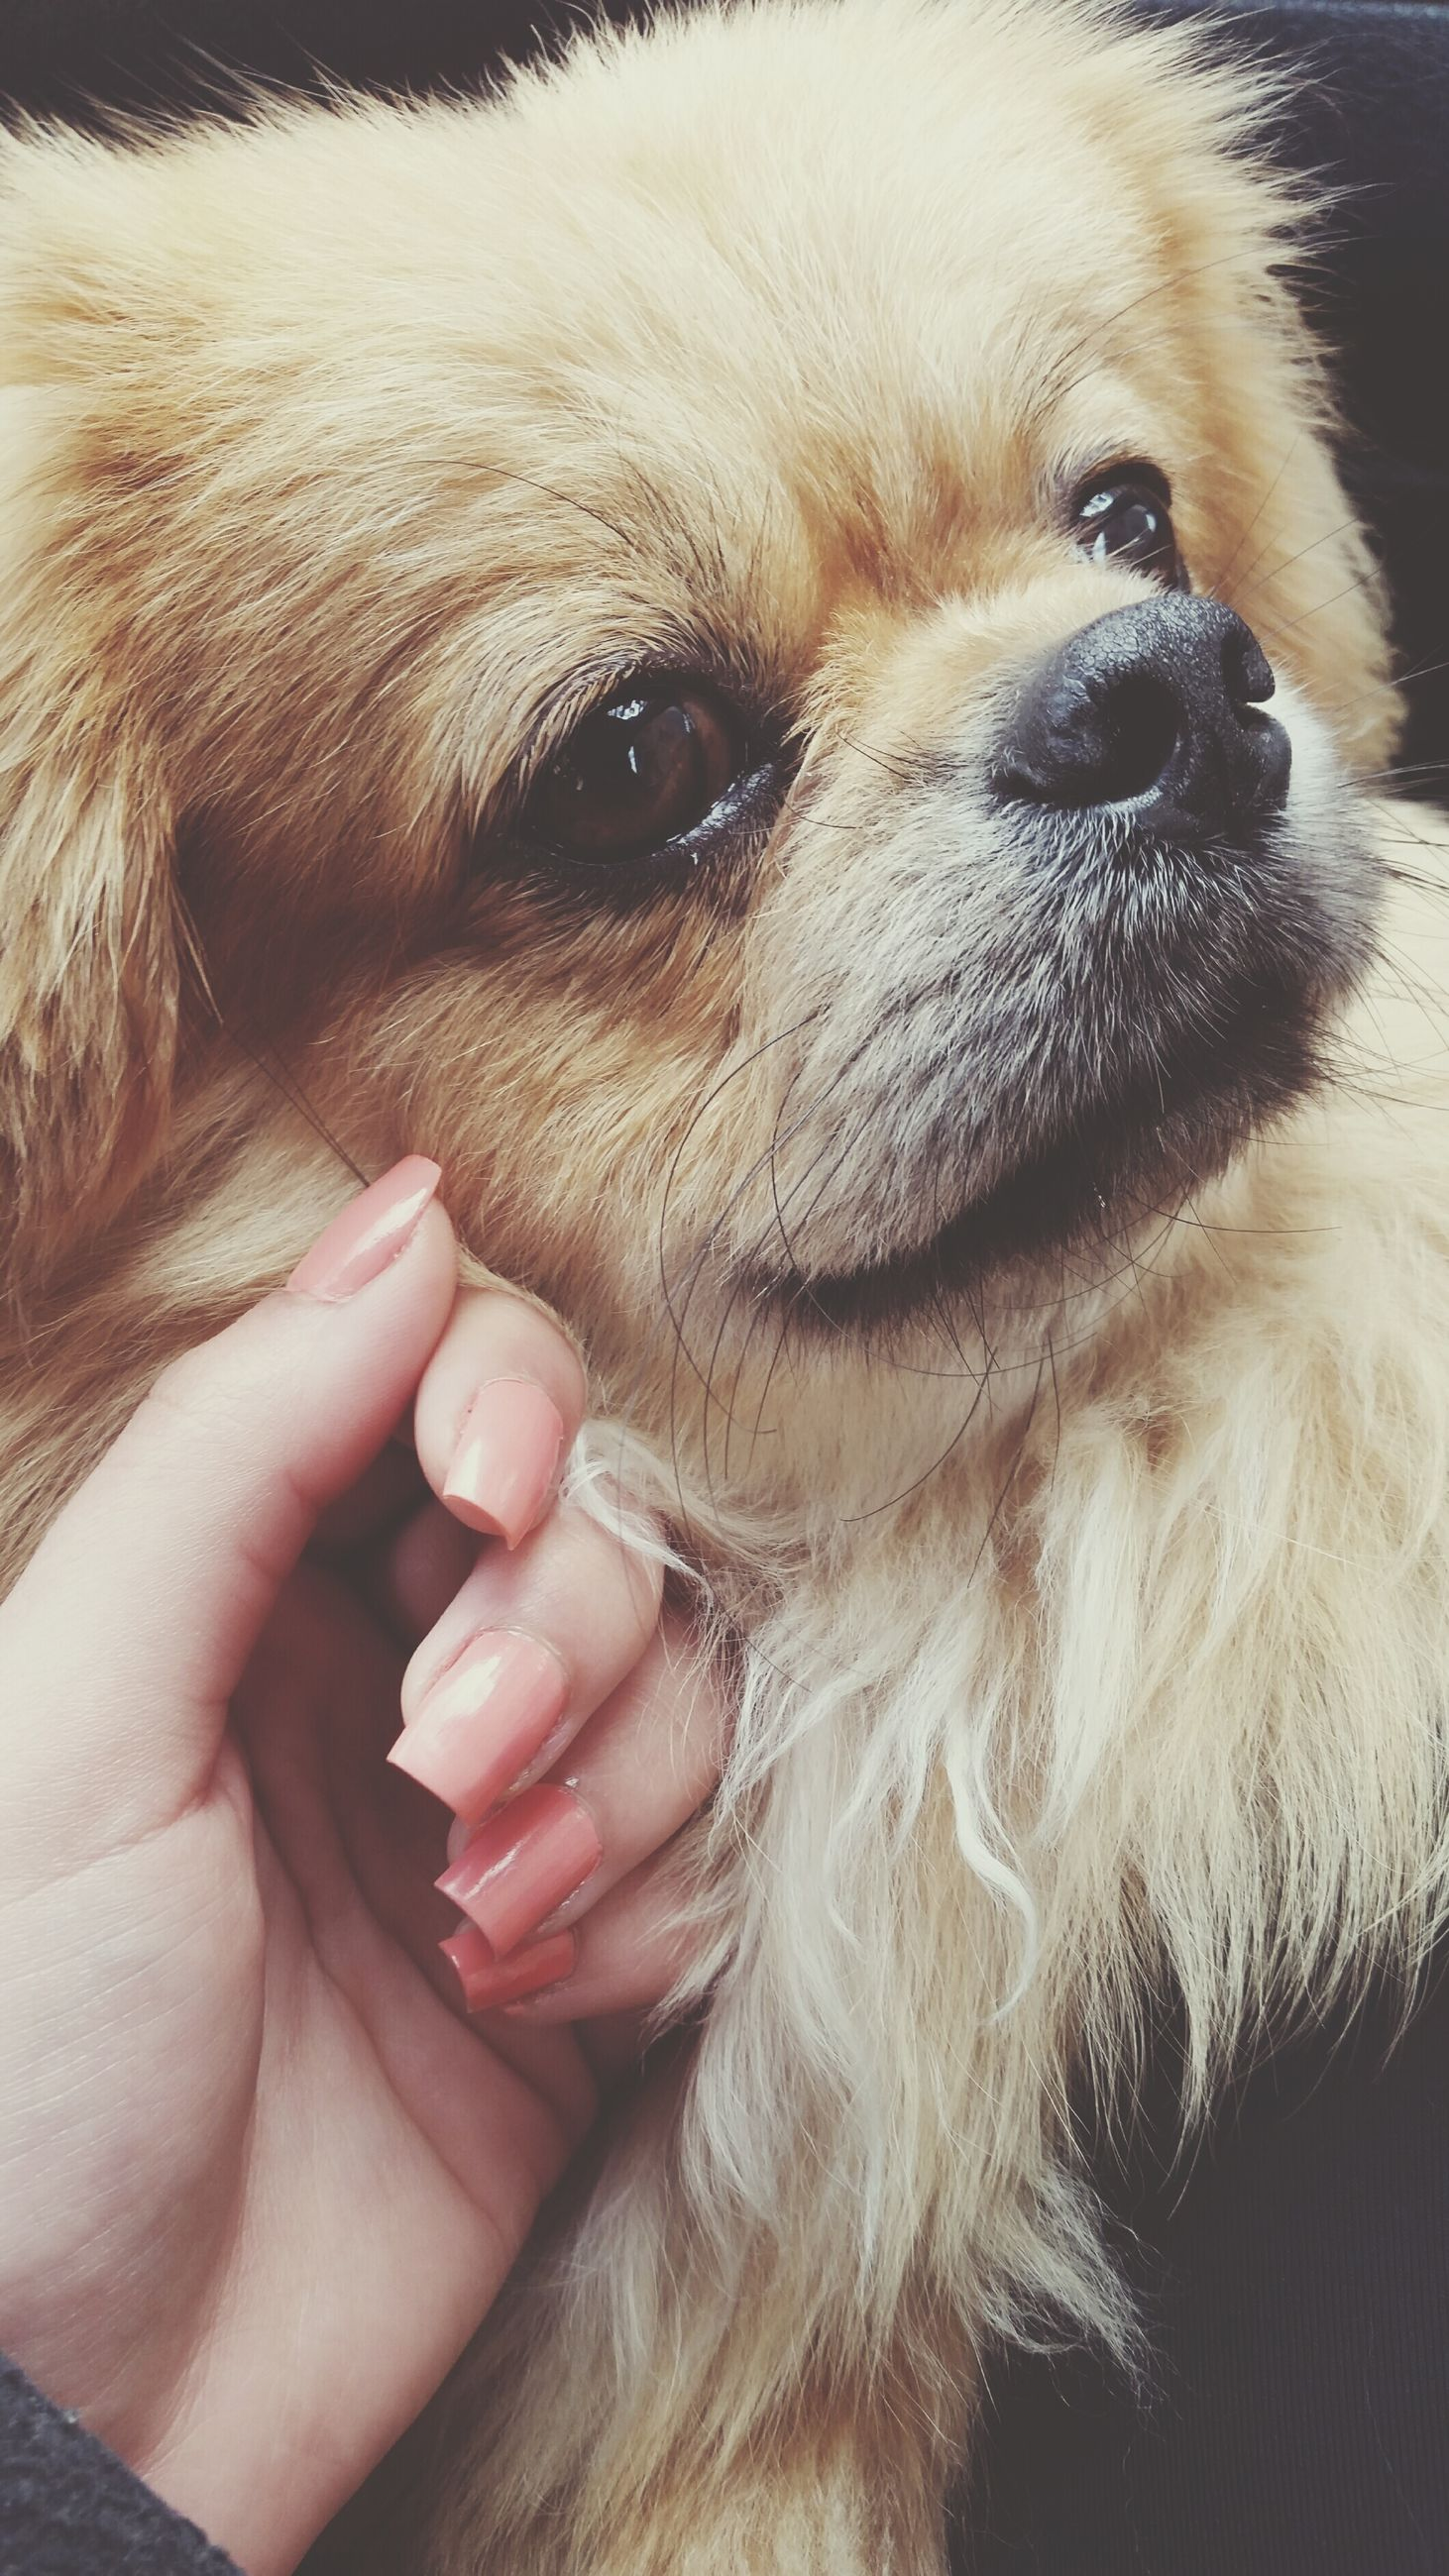 one animal, animal themes, dog, pets, domestic animals, mammal, part of, person, close-up, animal head, cropped, animal body part, portrait, lifestyles, holding, pet owner, unrecognizable person